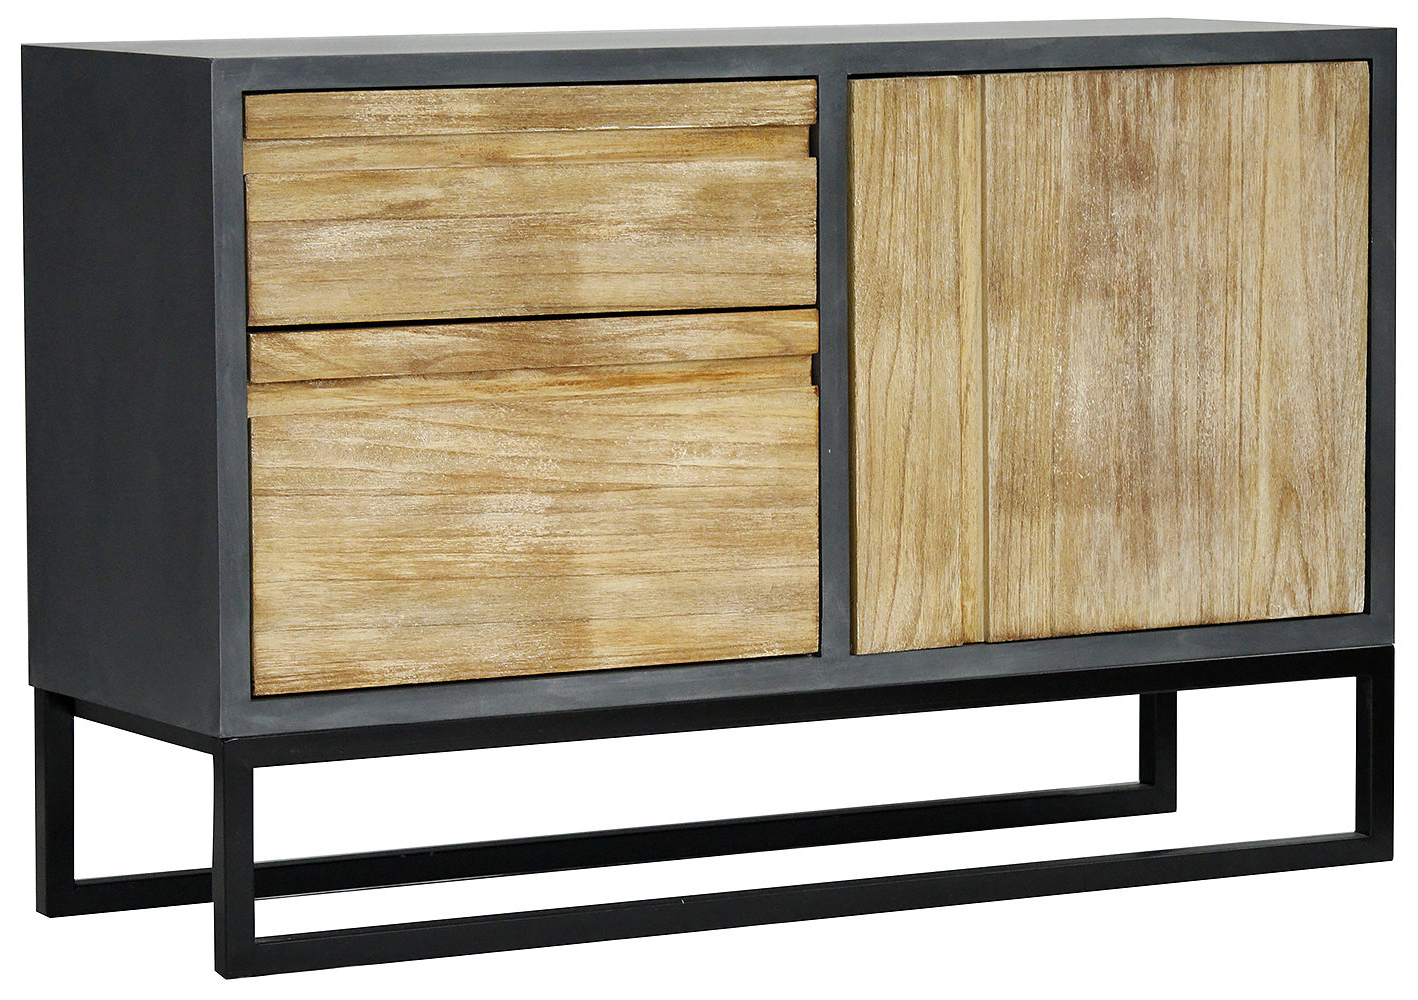 Modern Trent Austin Design Sideboards + Buffets | Allmodern For Casolino Sideboards (View 17 of 20)